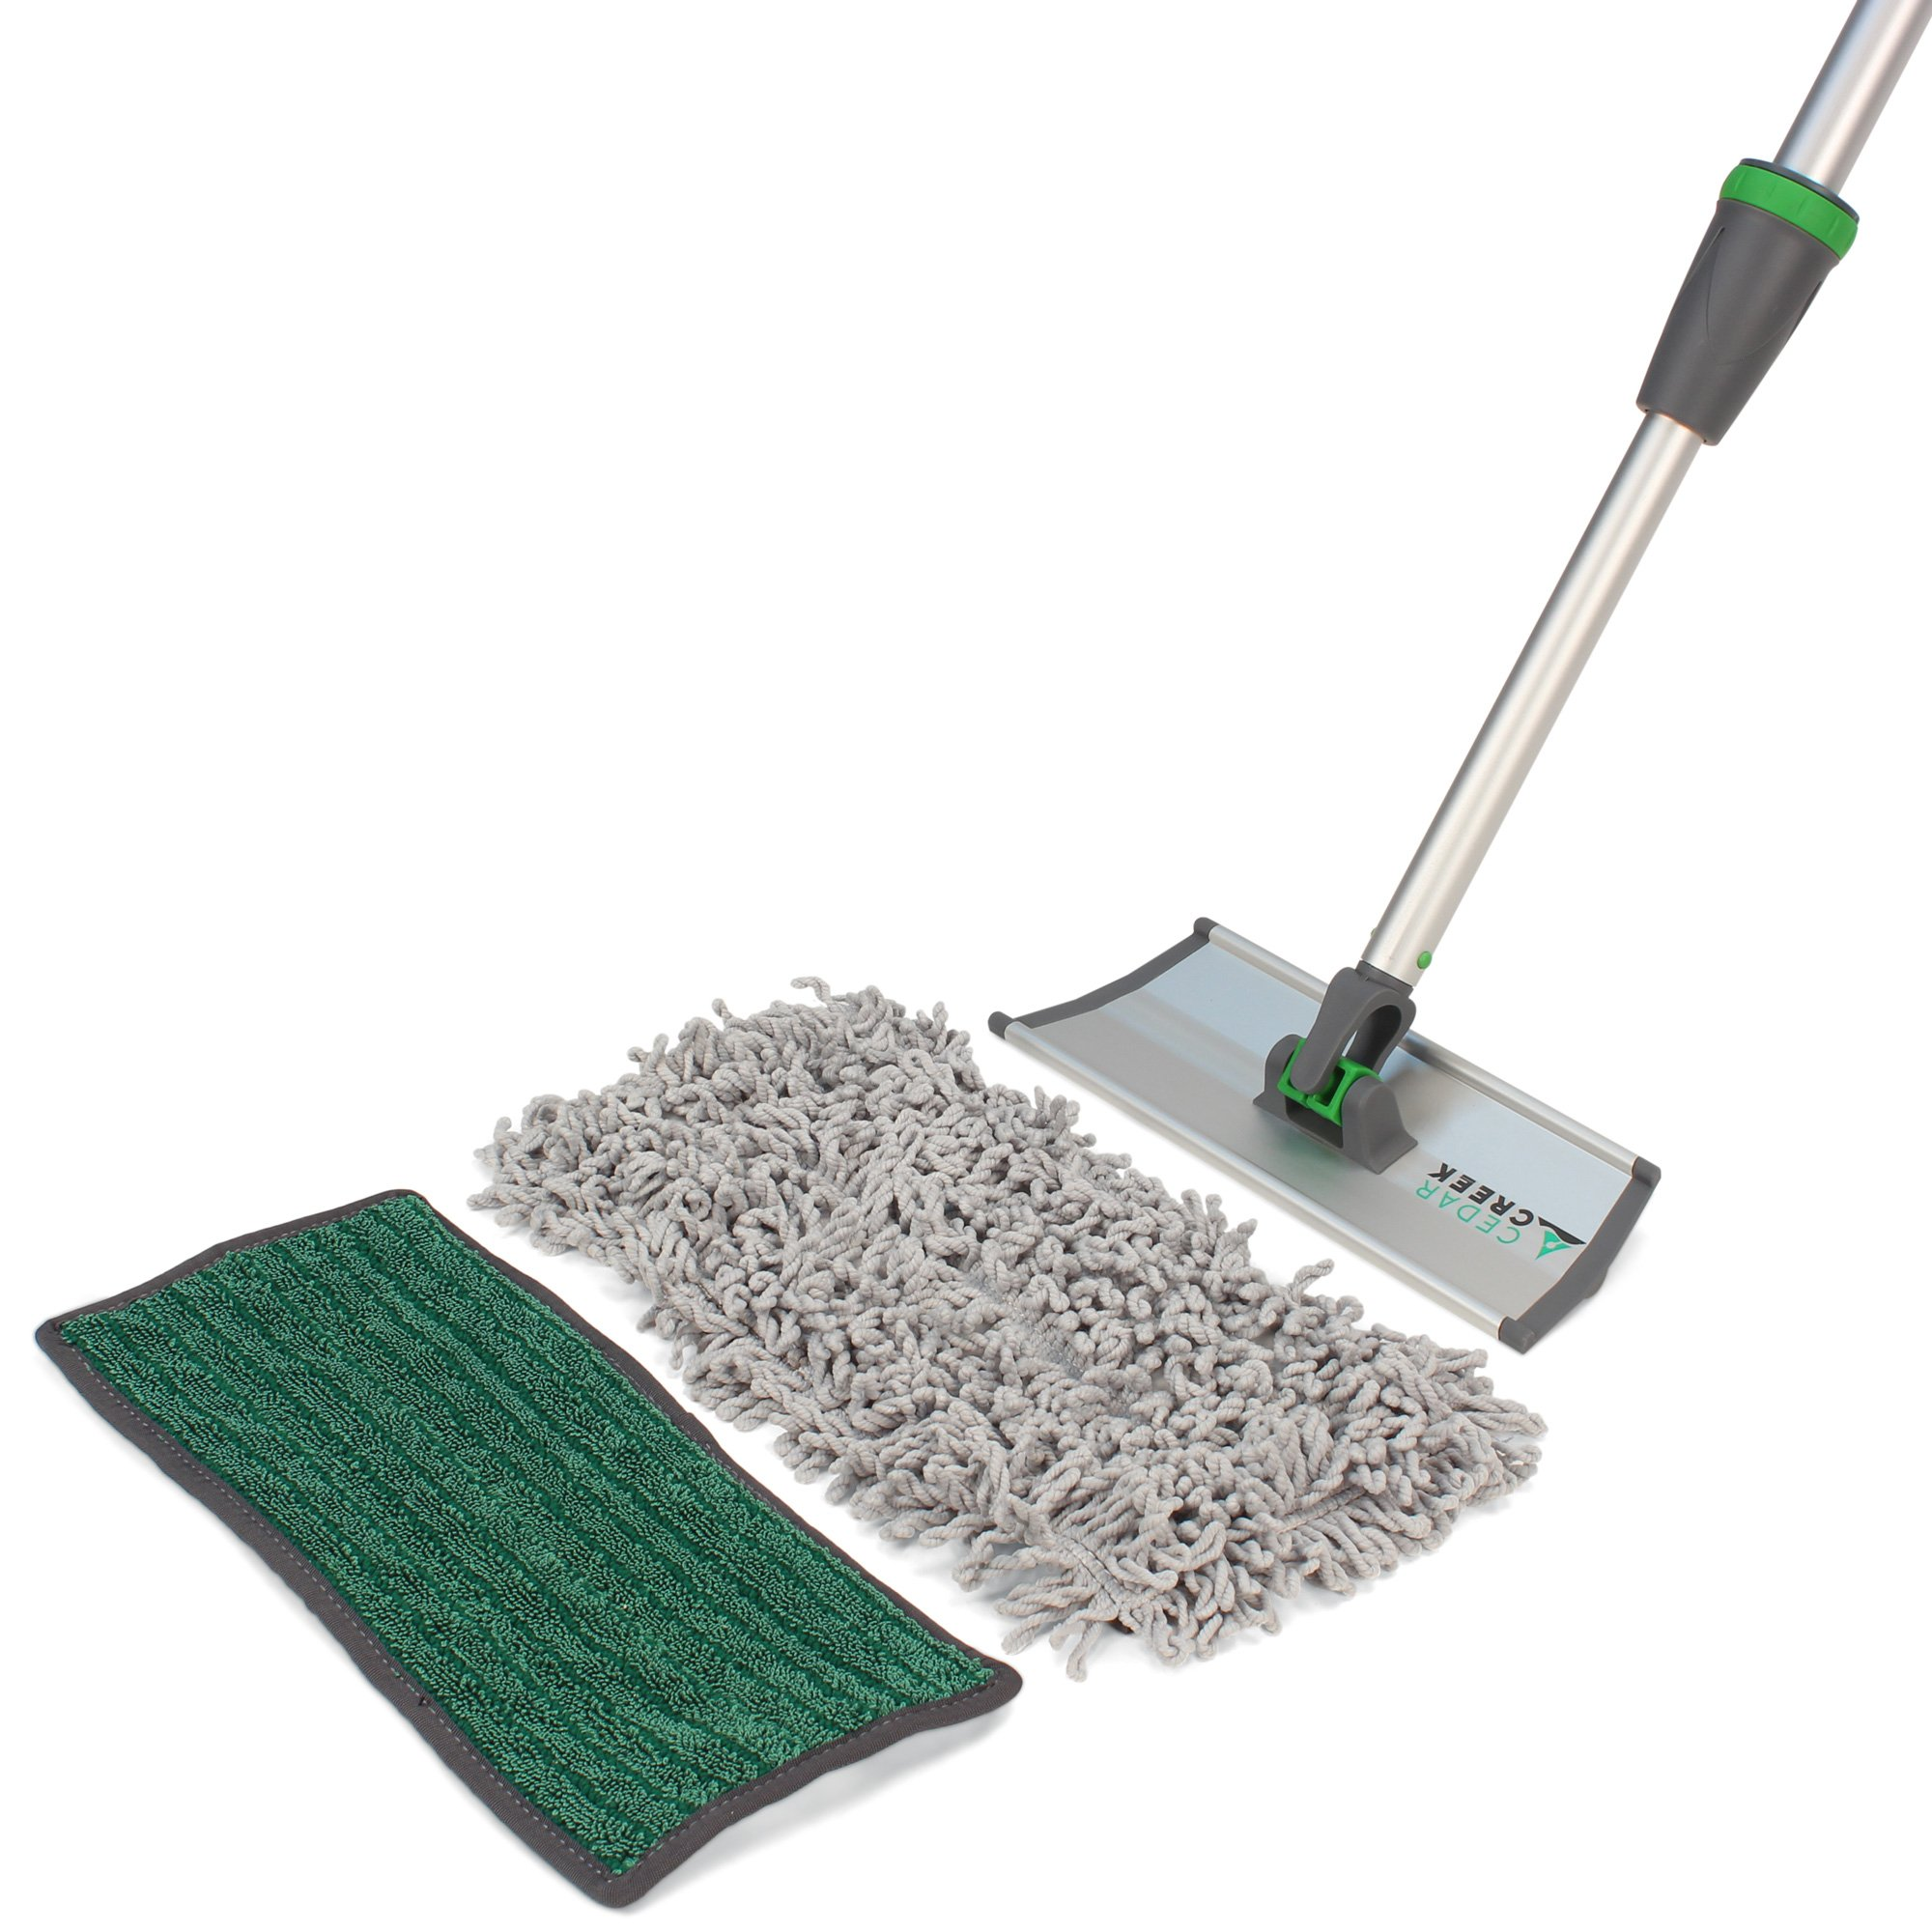 12'' Bathroom & Shower Microfiber Floor & Wall Cleaning Kit, 12'' Damp Mop, 12'' Loop Mop (great for picking up hair), Small Handle Adjusts from 25''-42'', 10'' Rocker Frame, Light Weight Aluminum